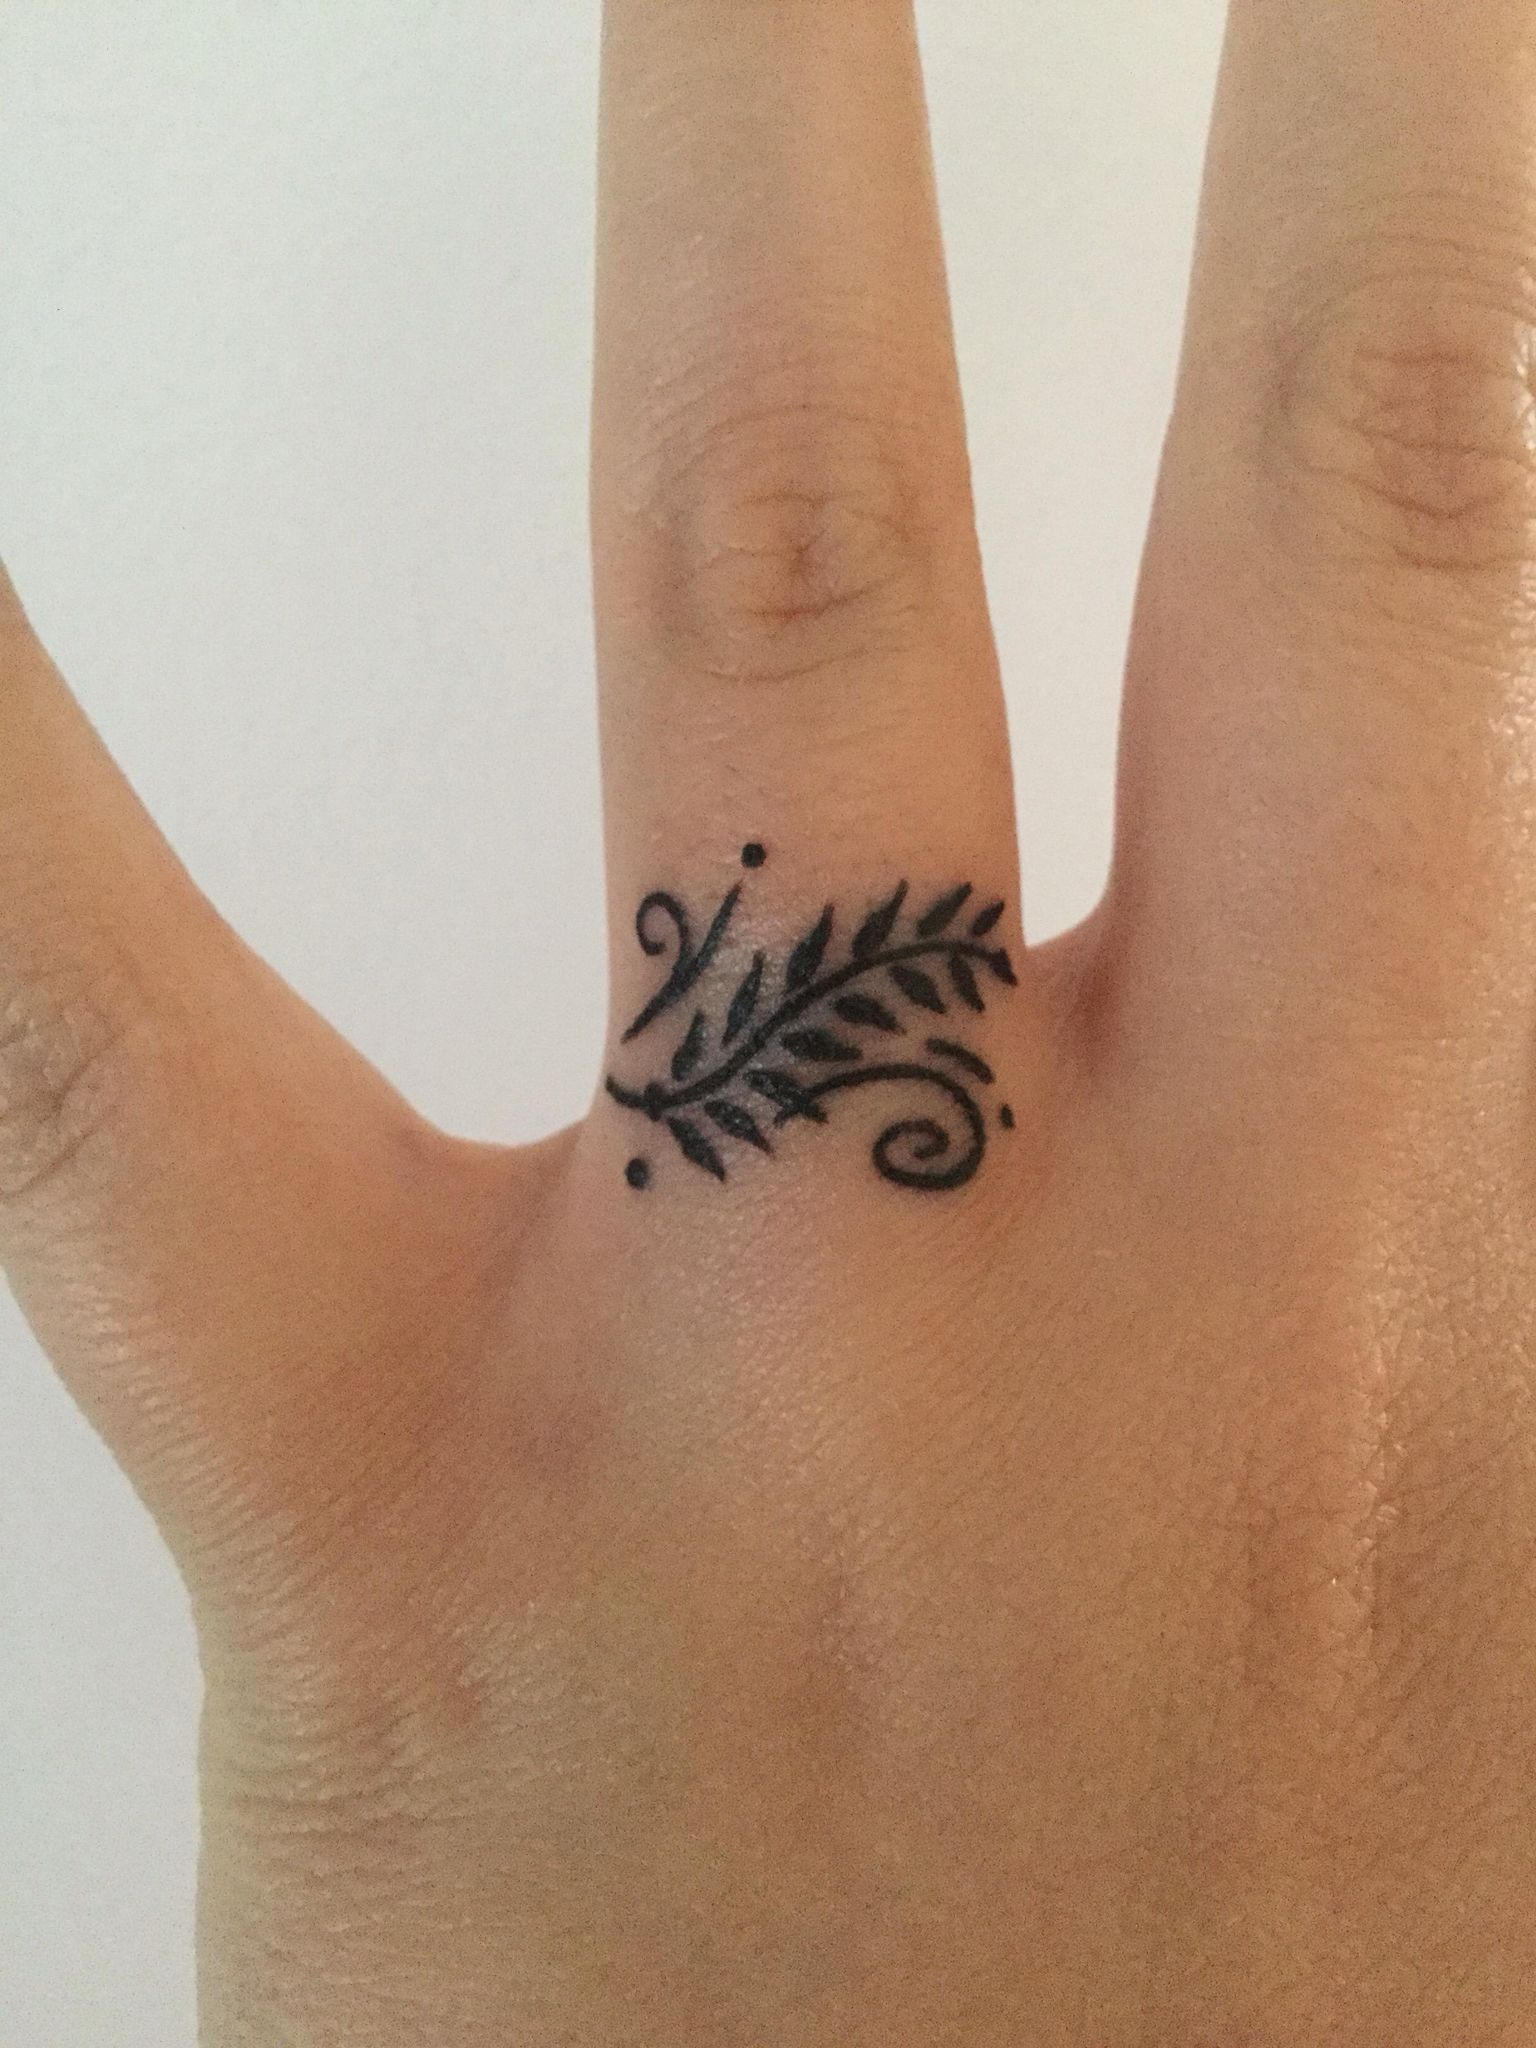 55 romantic wedding ring finger tattoo designs and ideas - I D Like To Get A Tattoo In Place Of A Wedding Ring I Think This Would Be Perfect For It When The Day Comes By Audrey At Sacre Bleu Chicoutimi